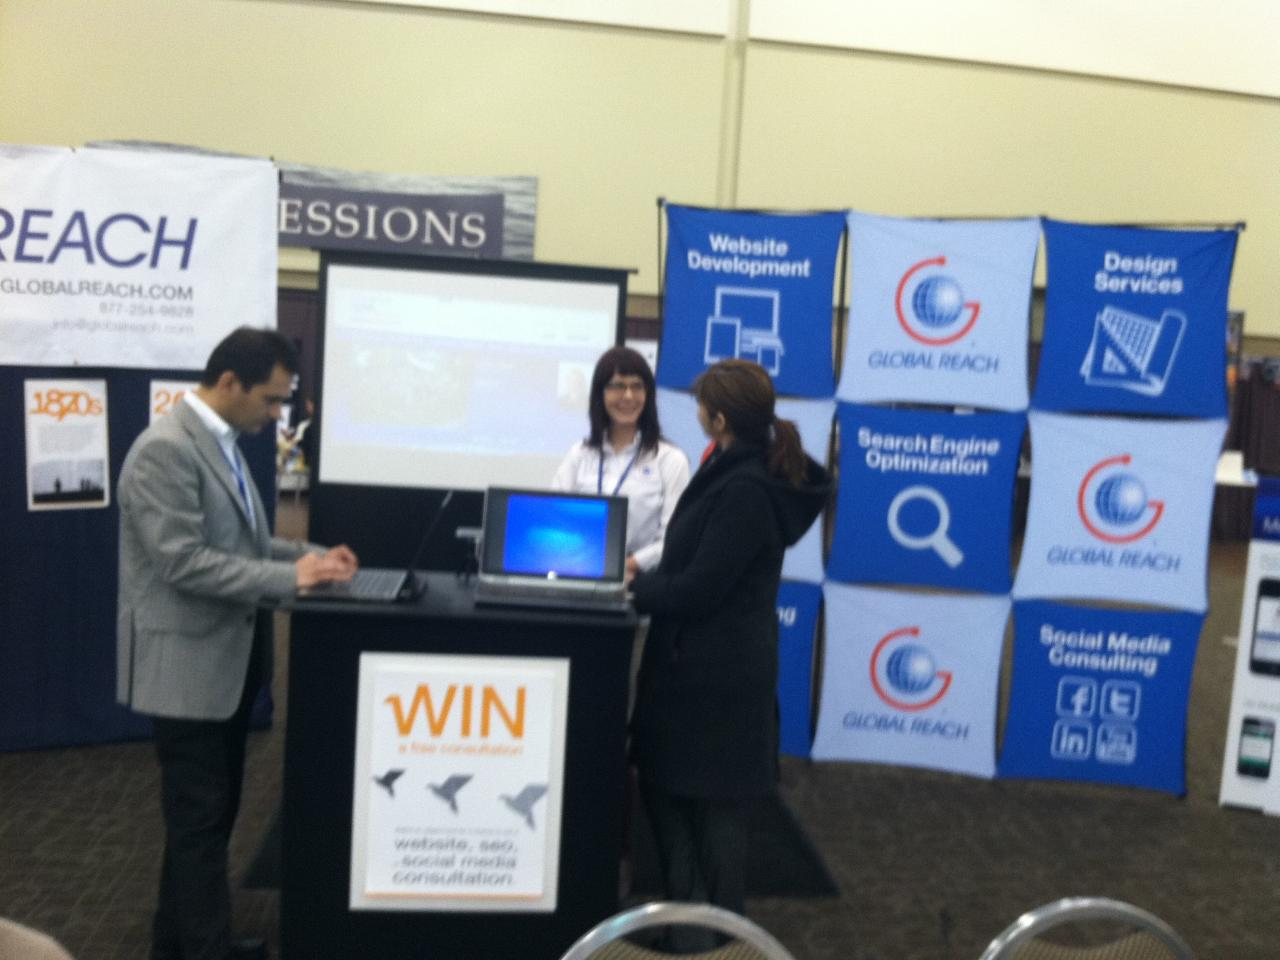 Members of the Global Reach team at the Expo